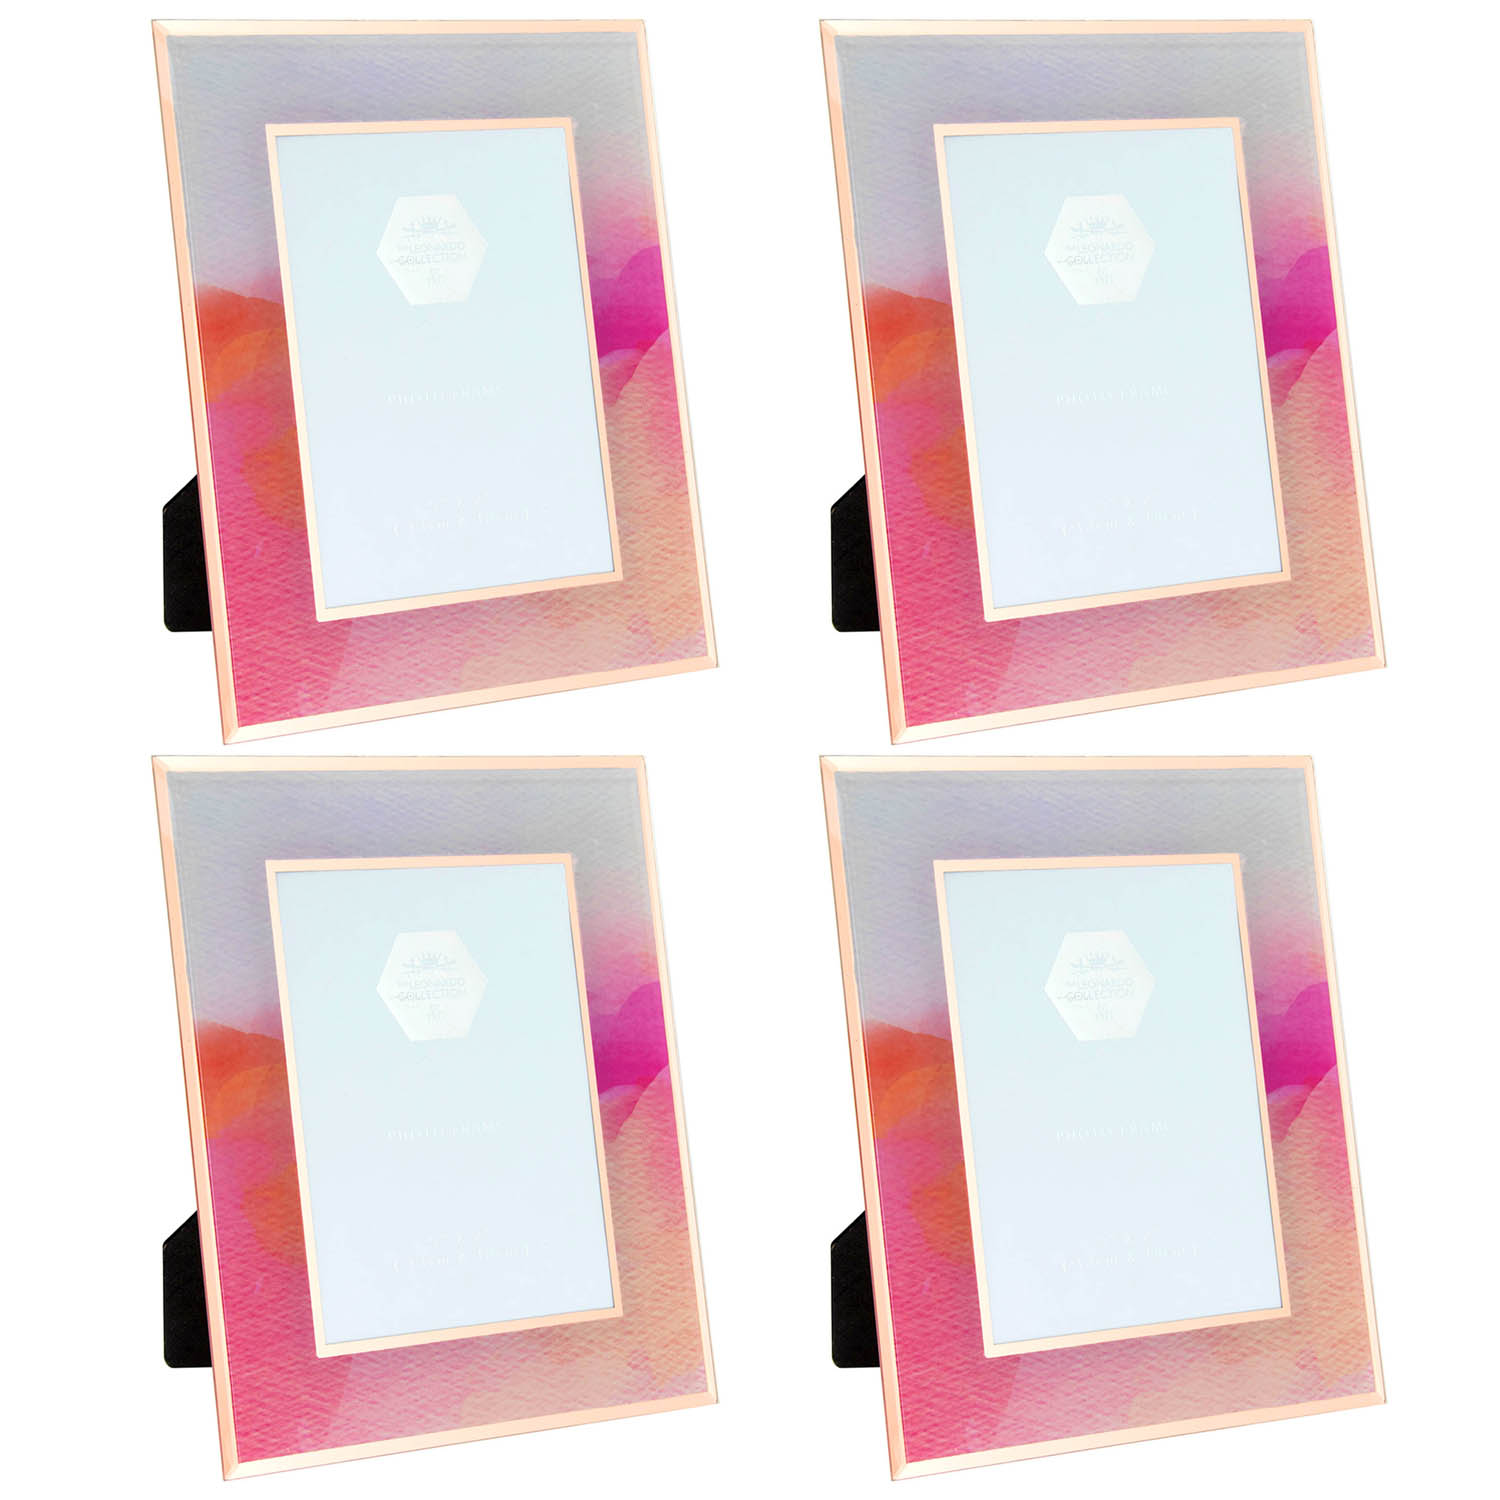 Set Of 2 Watercolour Photo Frame Picture Holder 5 x 7 Image Display Home Decor